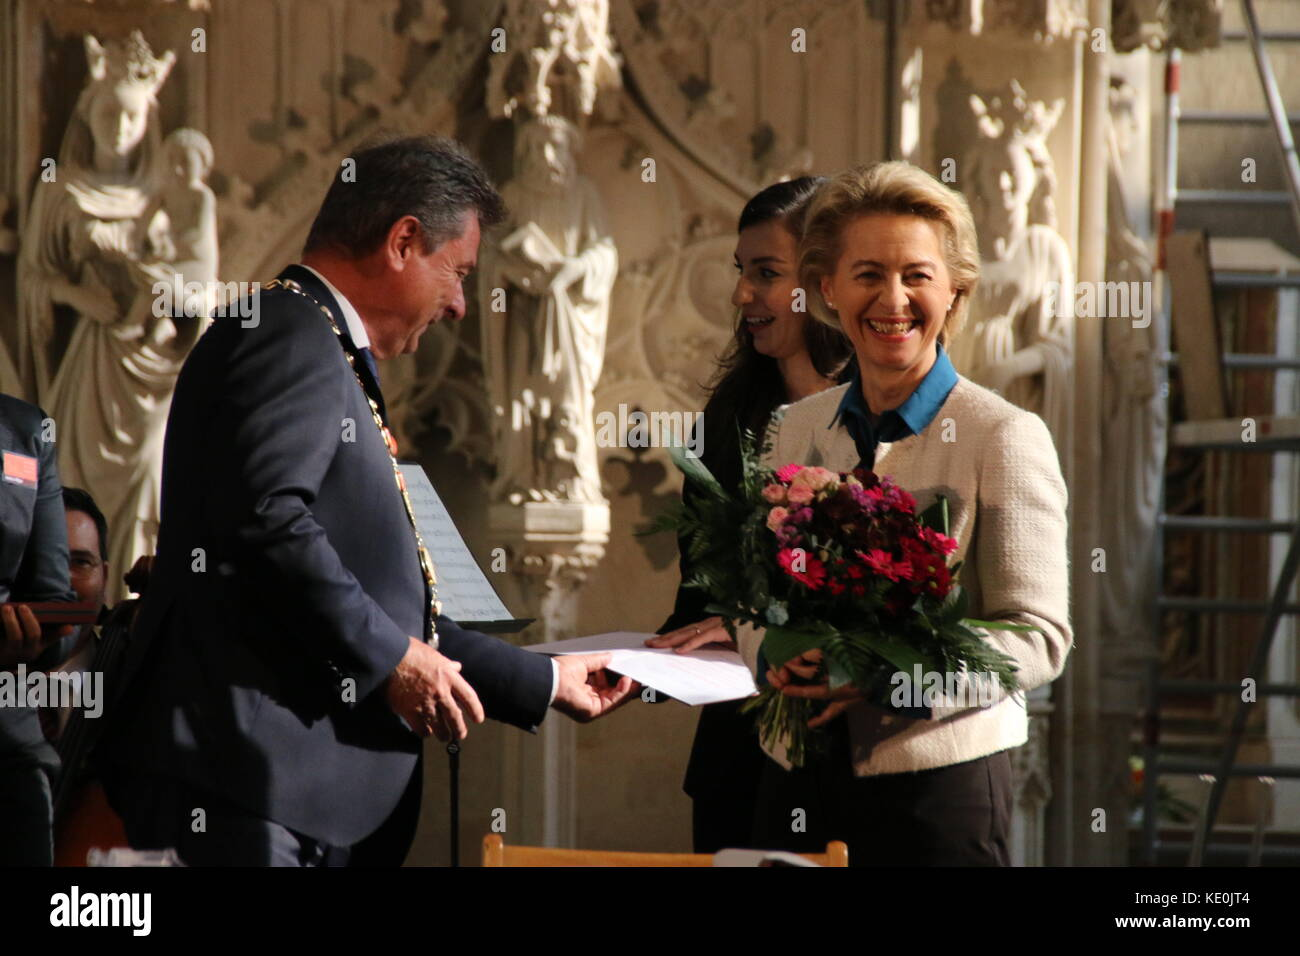 Magdeburg, Germany. 17th Oct, 2017. Federal Minister of Defense, Dr. Ursula von der Leyen, is speaking at the Magdeburg - Stock Image